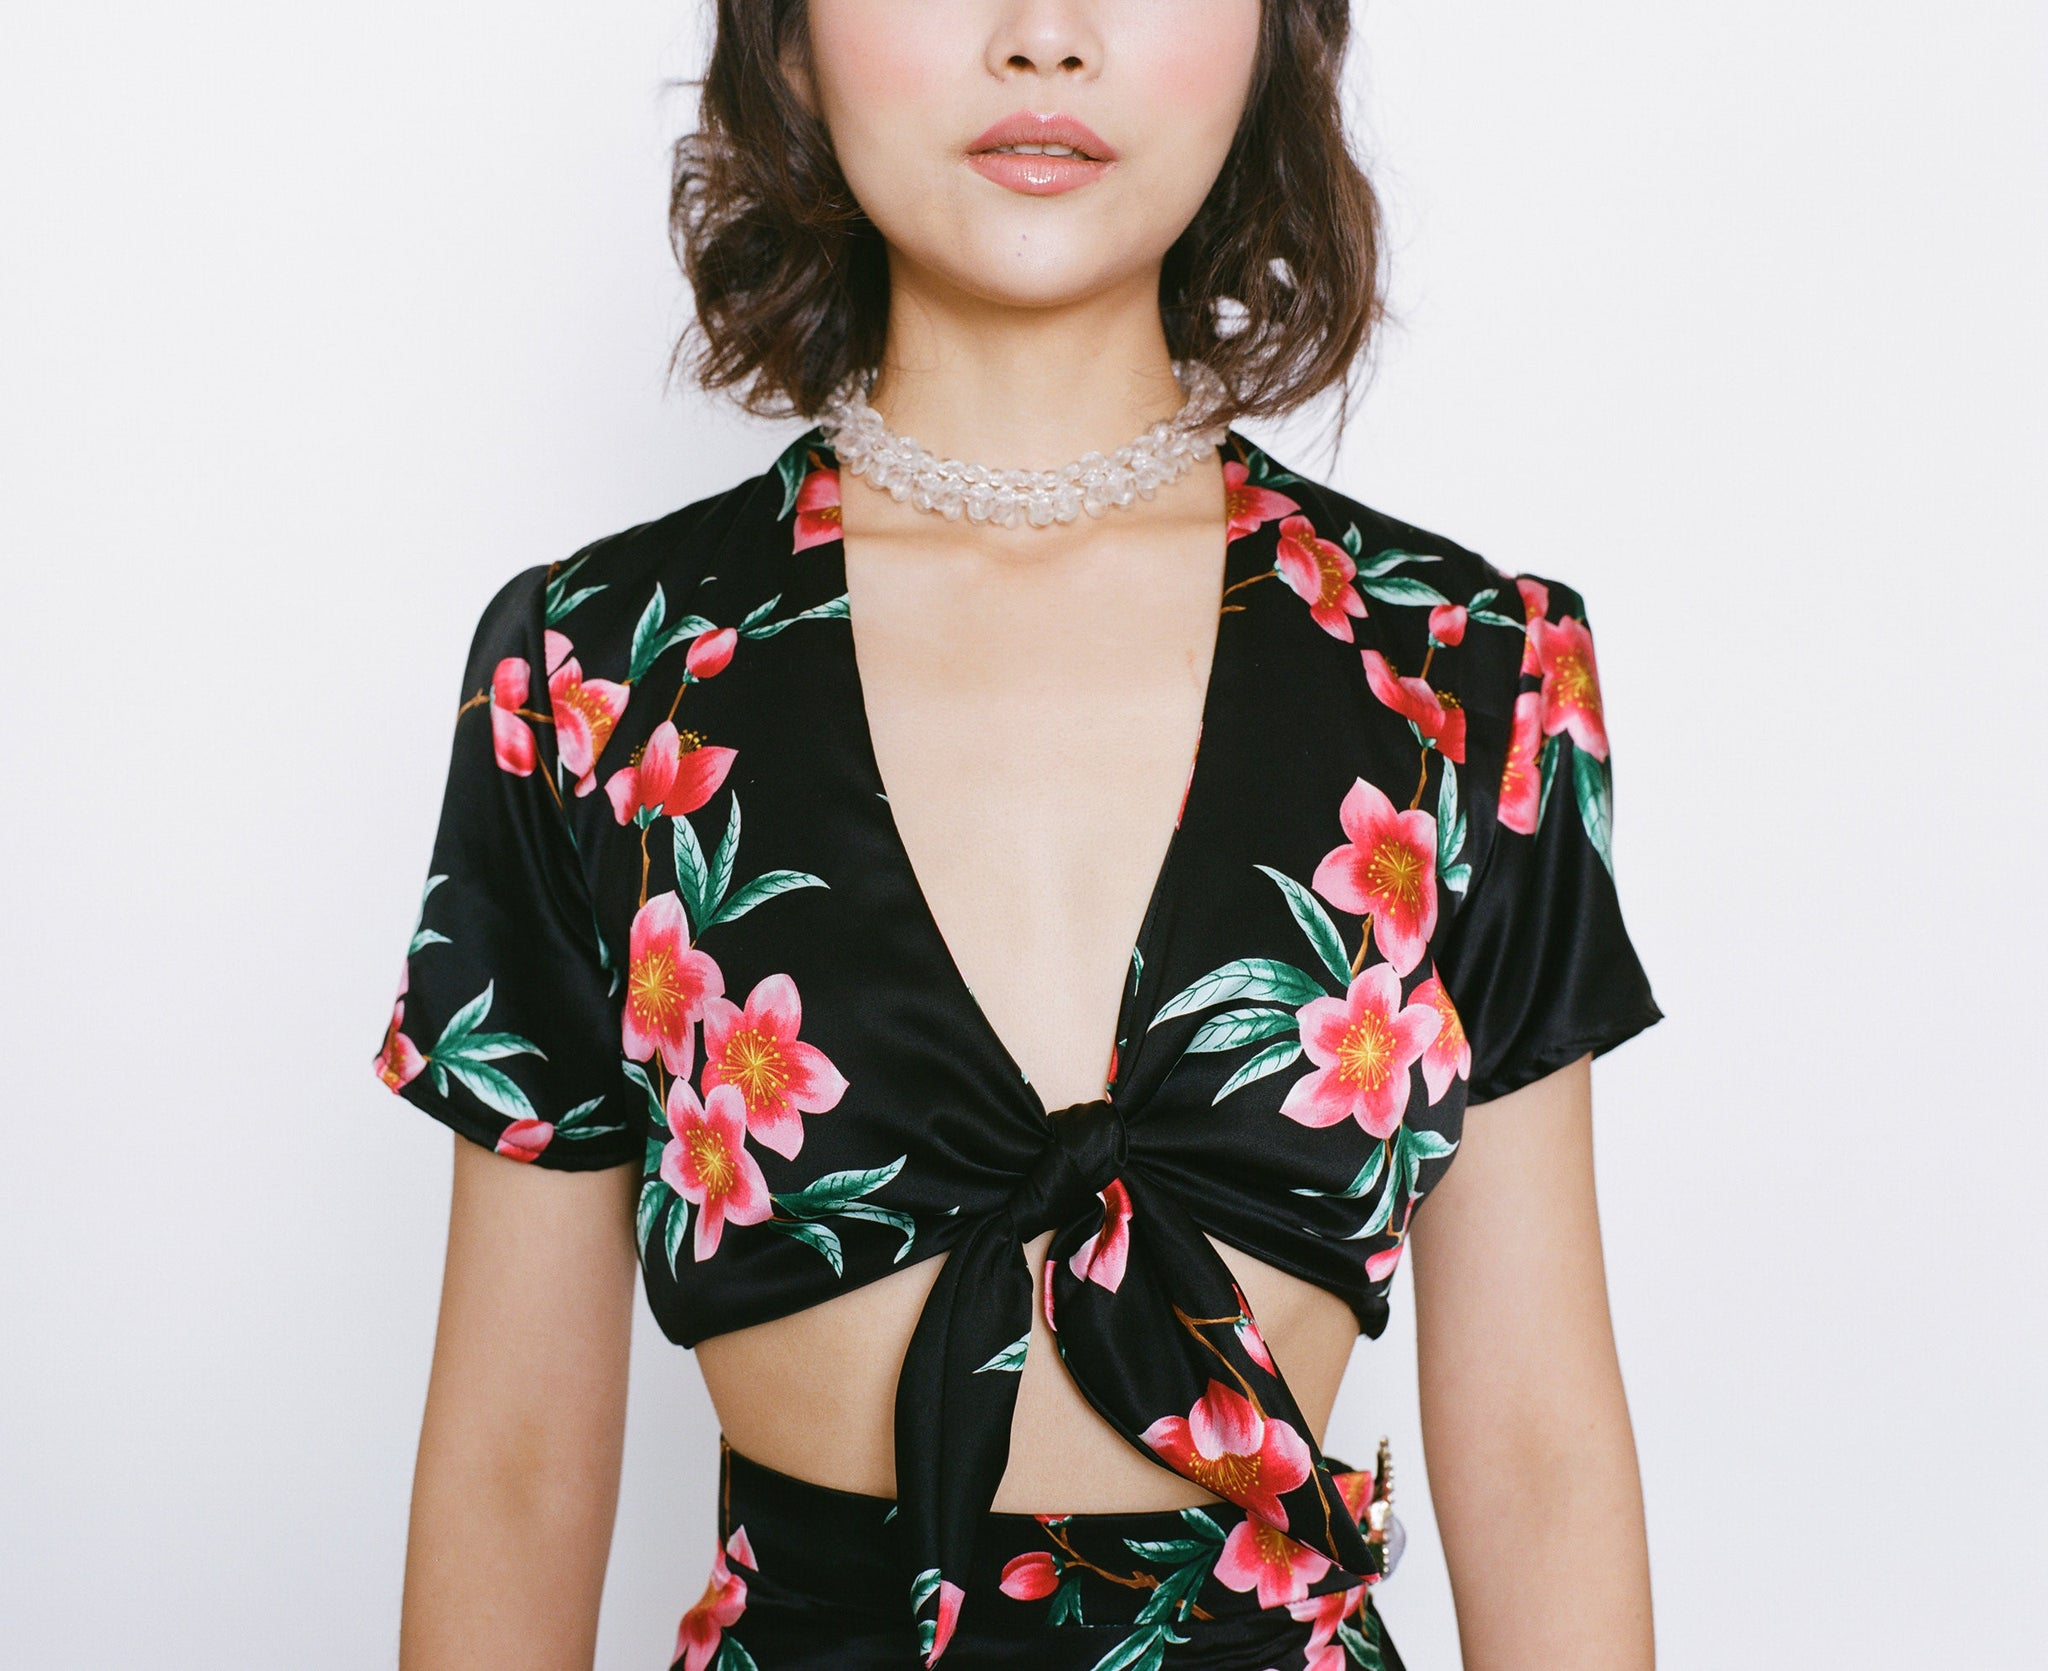 COPACABANA KNOTTED TIE CROP TOP